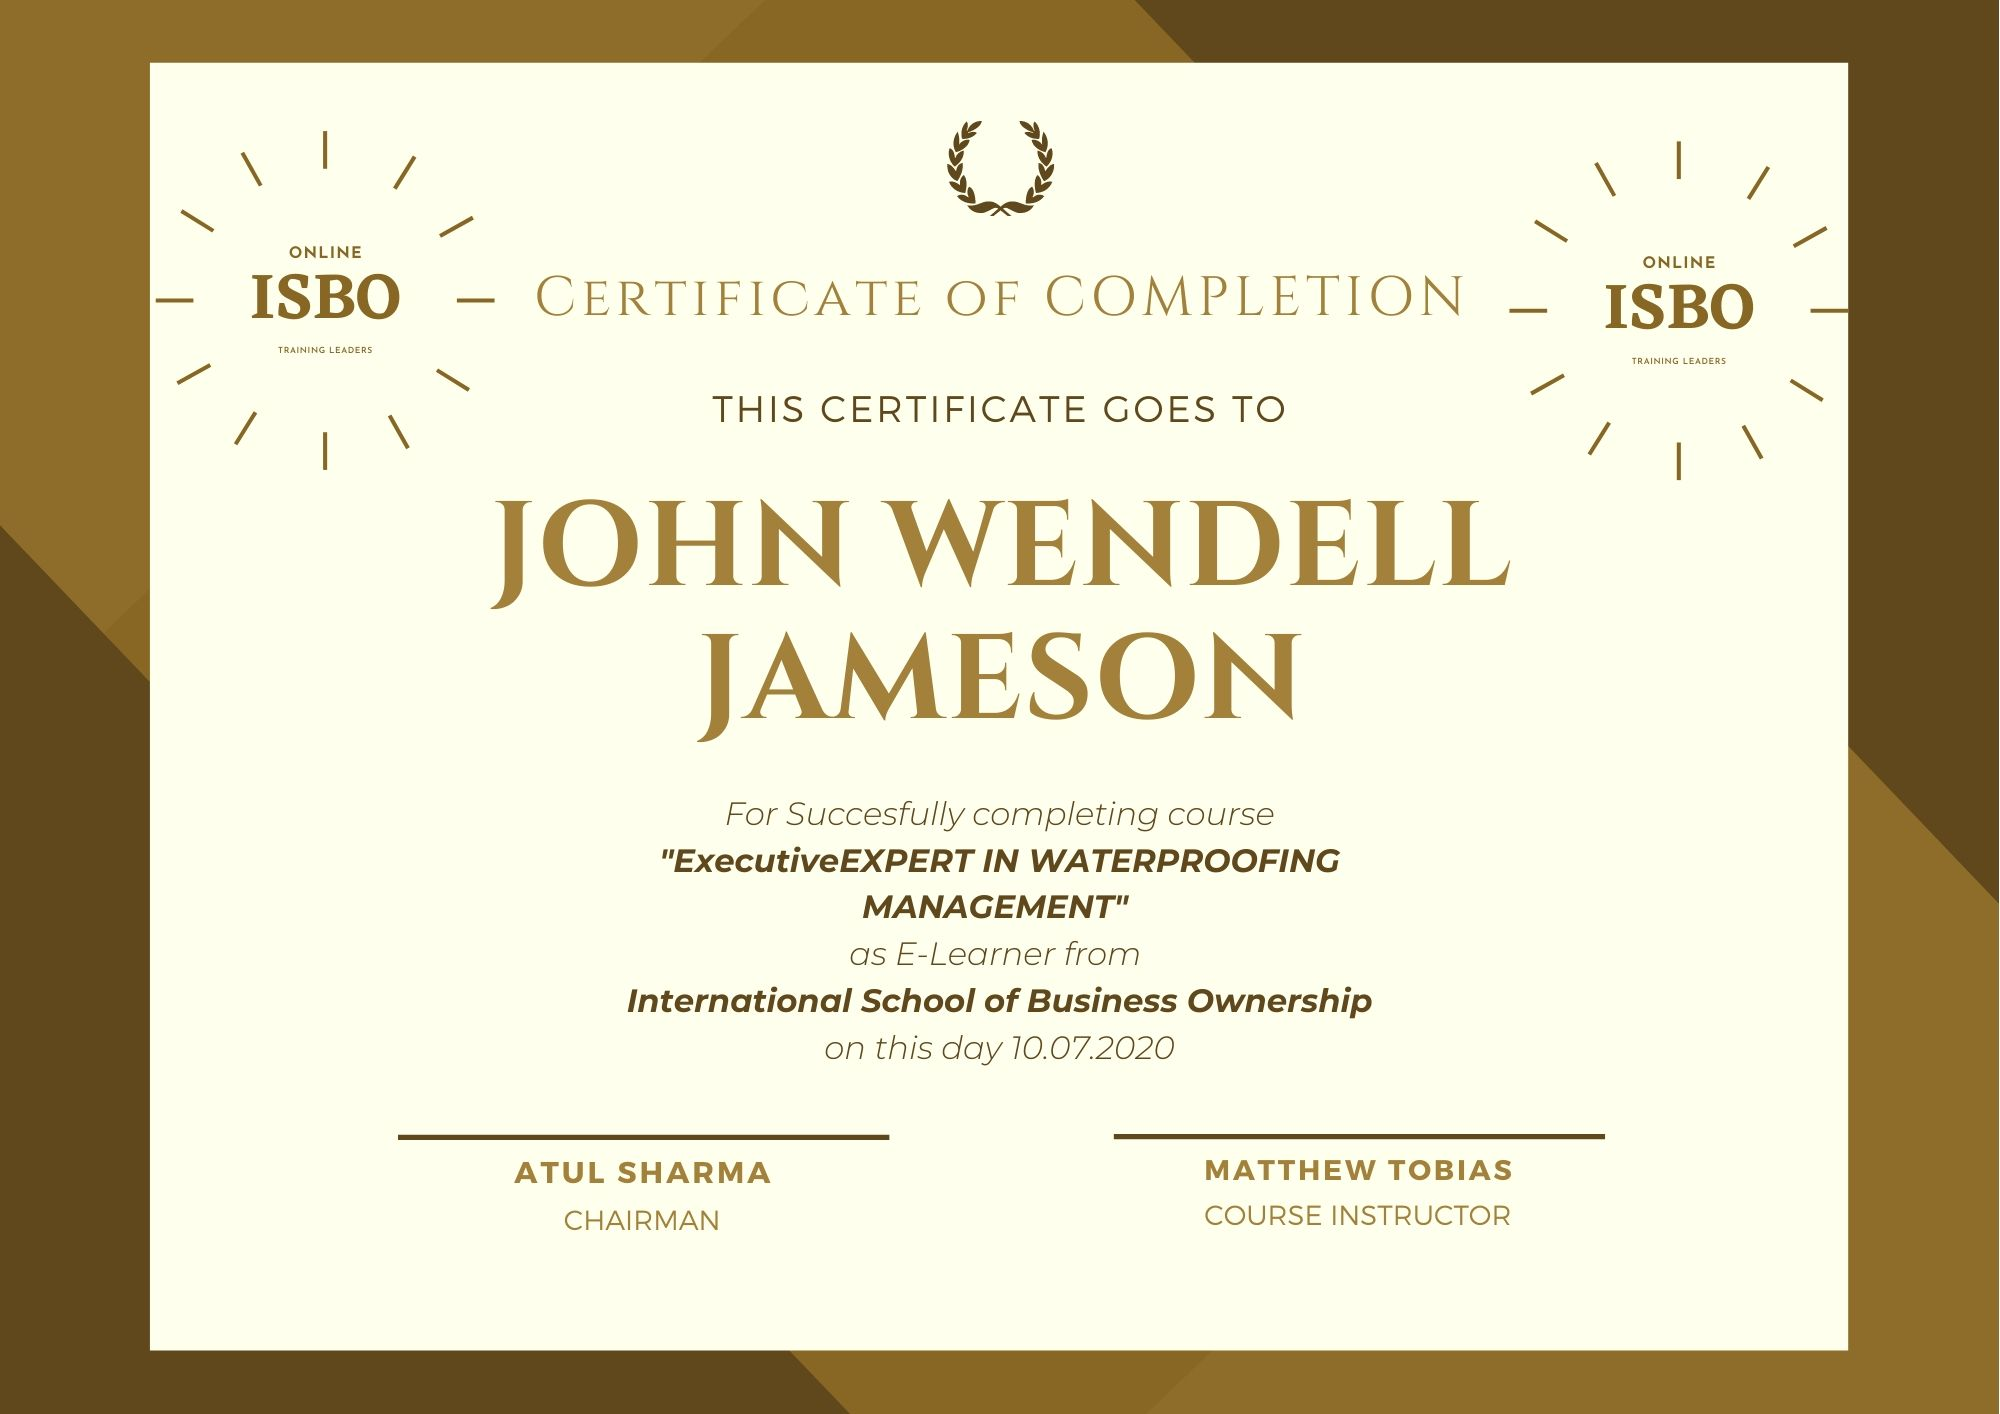 All our students who complete the course get certificate of Completion with ISBO Seal on it.   ISBO Seal is a trusted recognition in the Construction Industry and we honor our students as merit holder towards a better career.